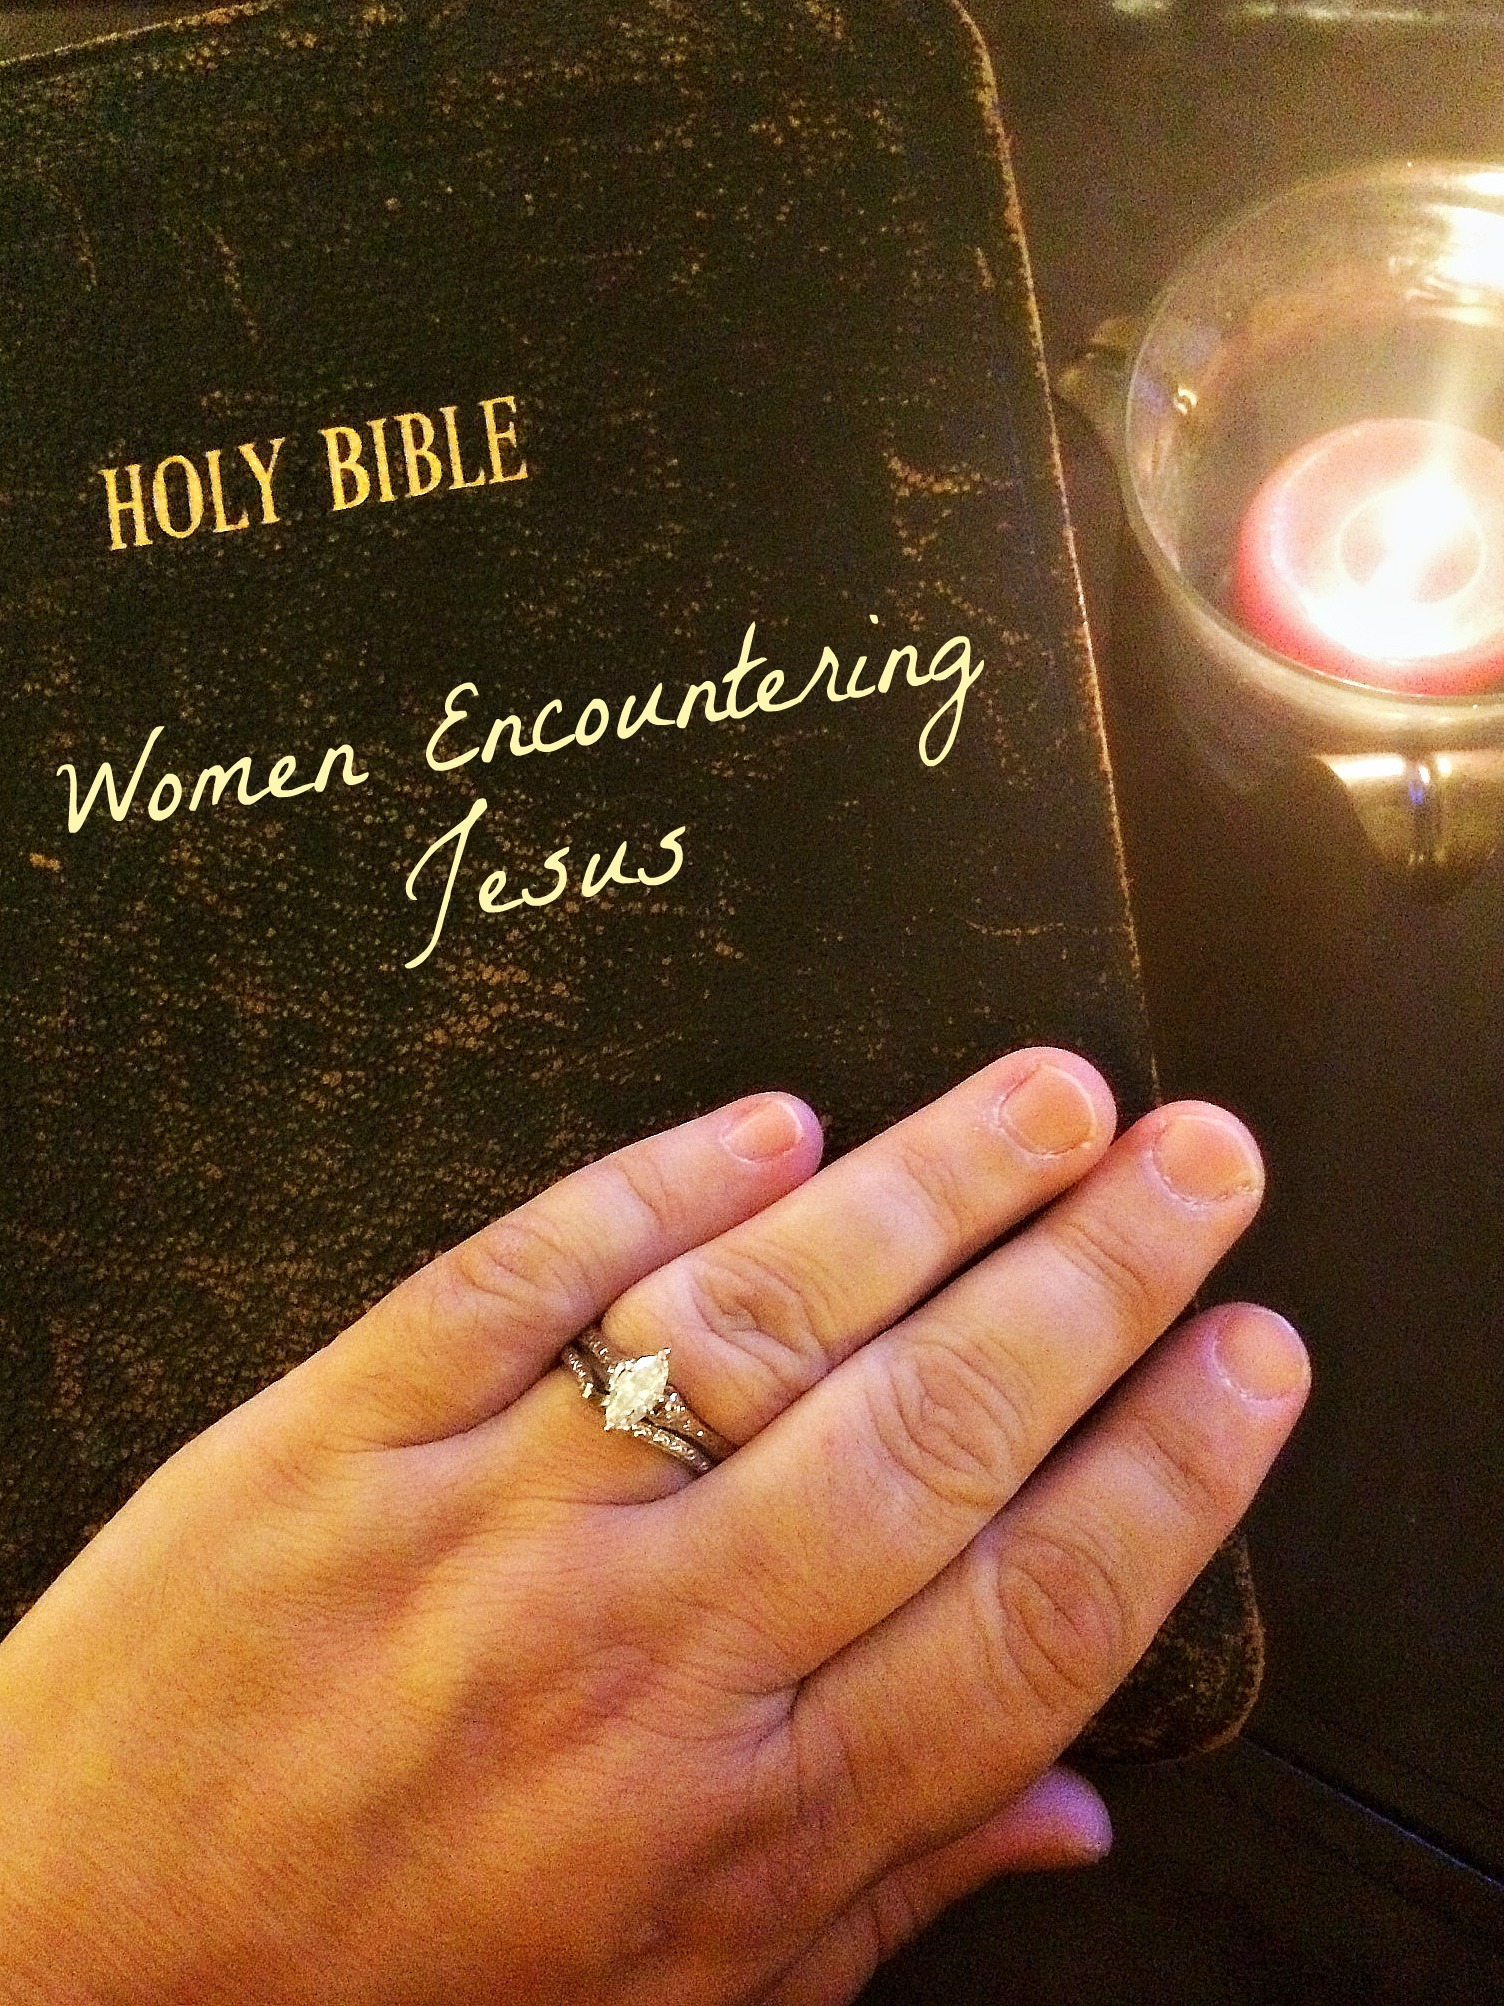 Women Encountering Jesus